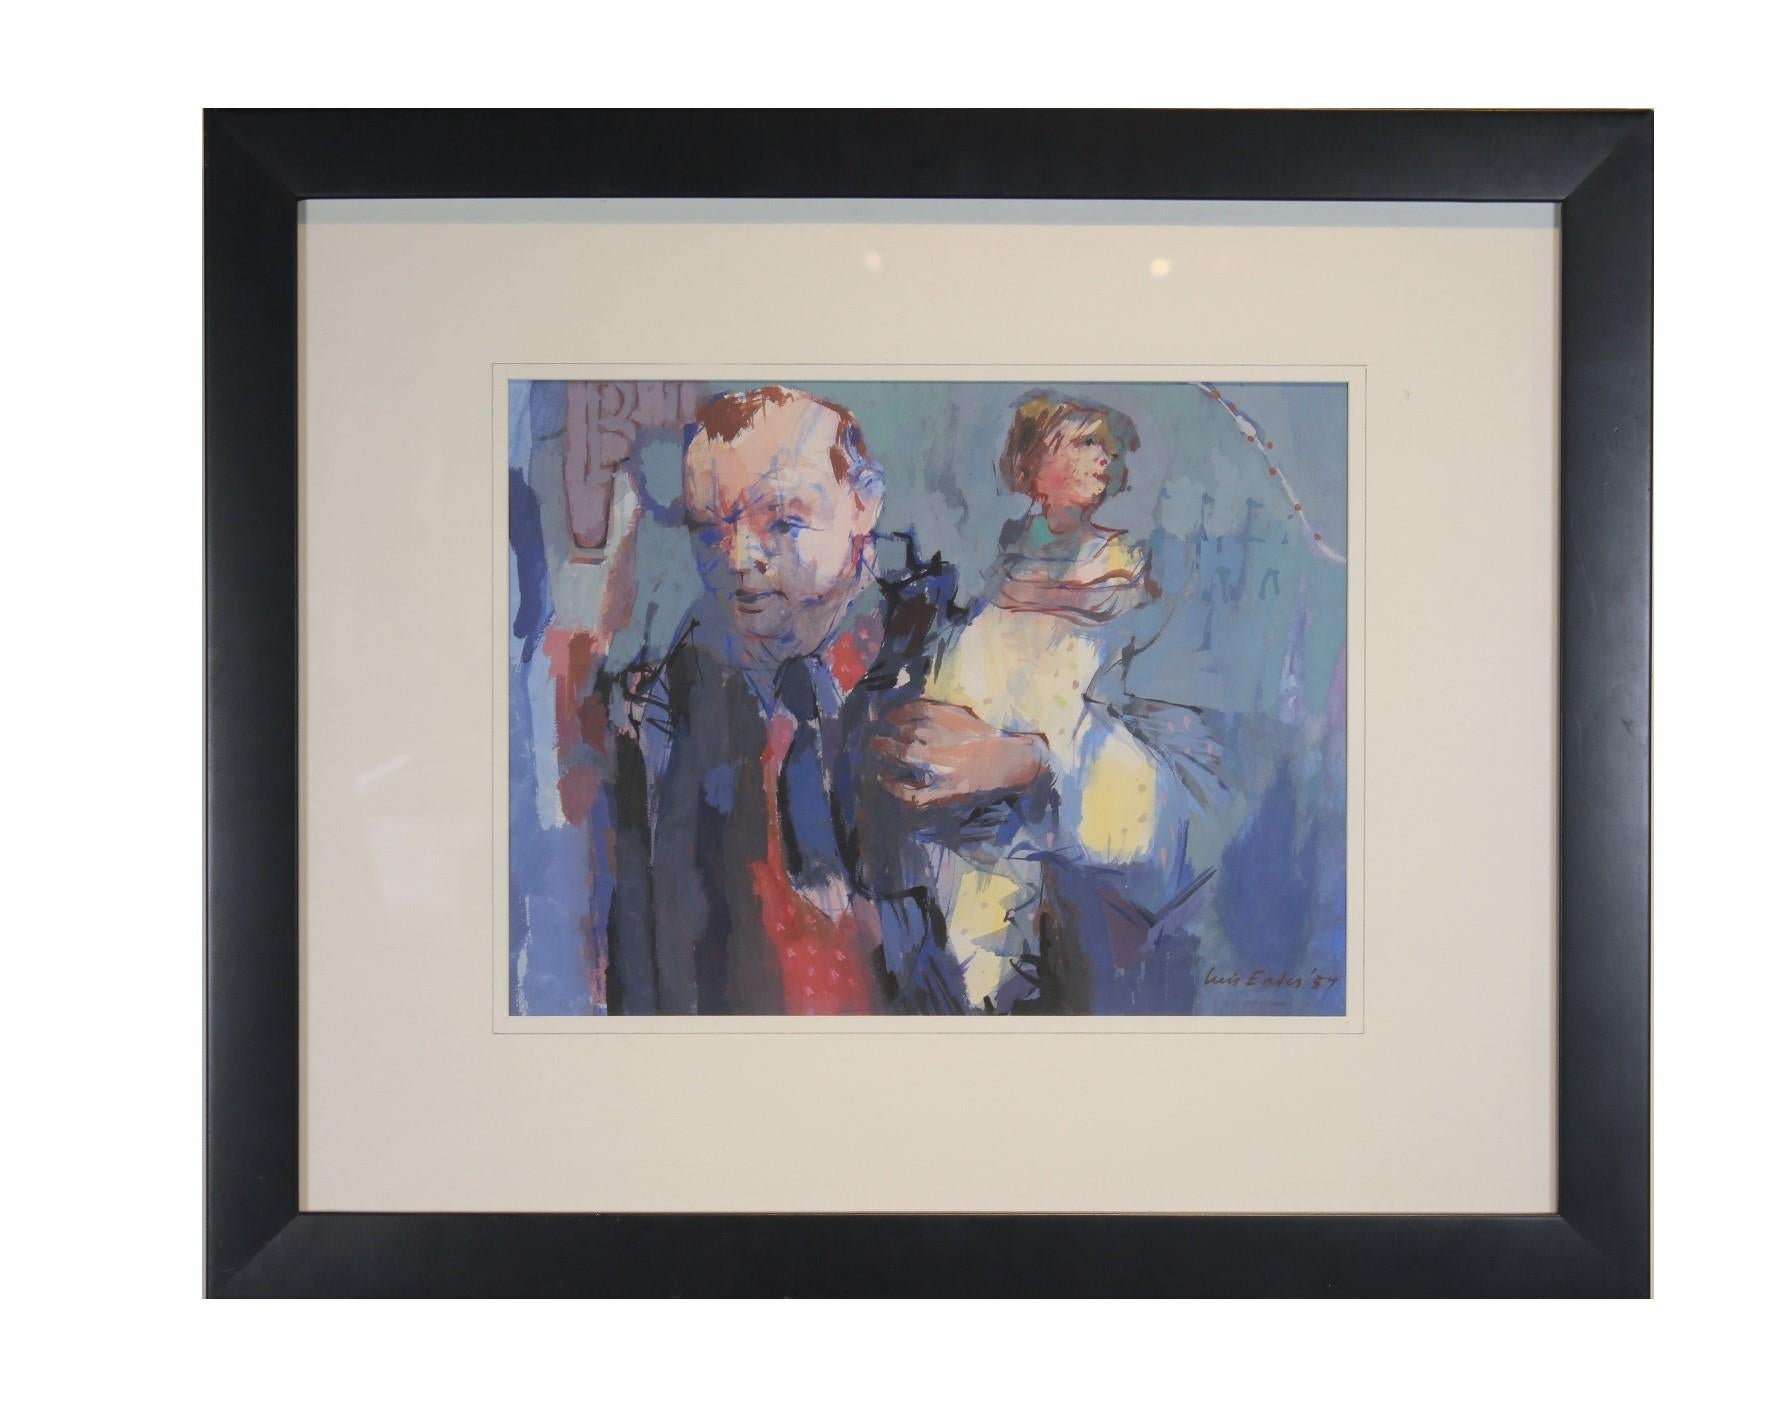 Man with Child - Figurative Abstract